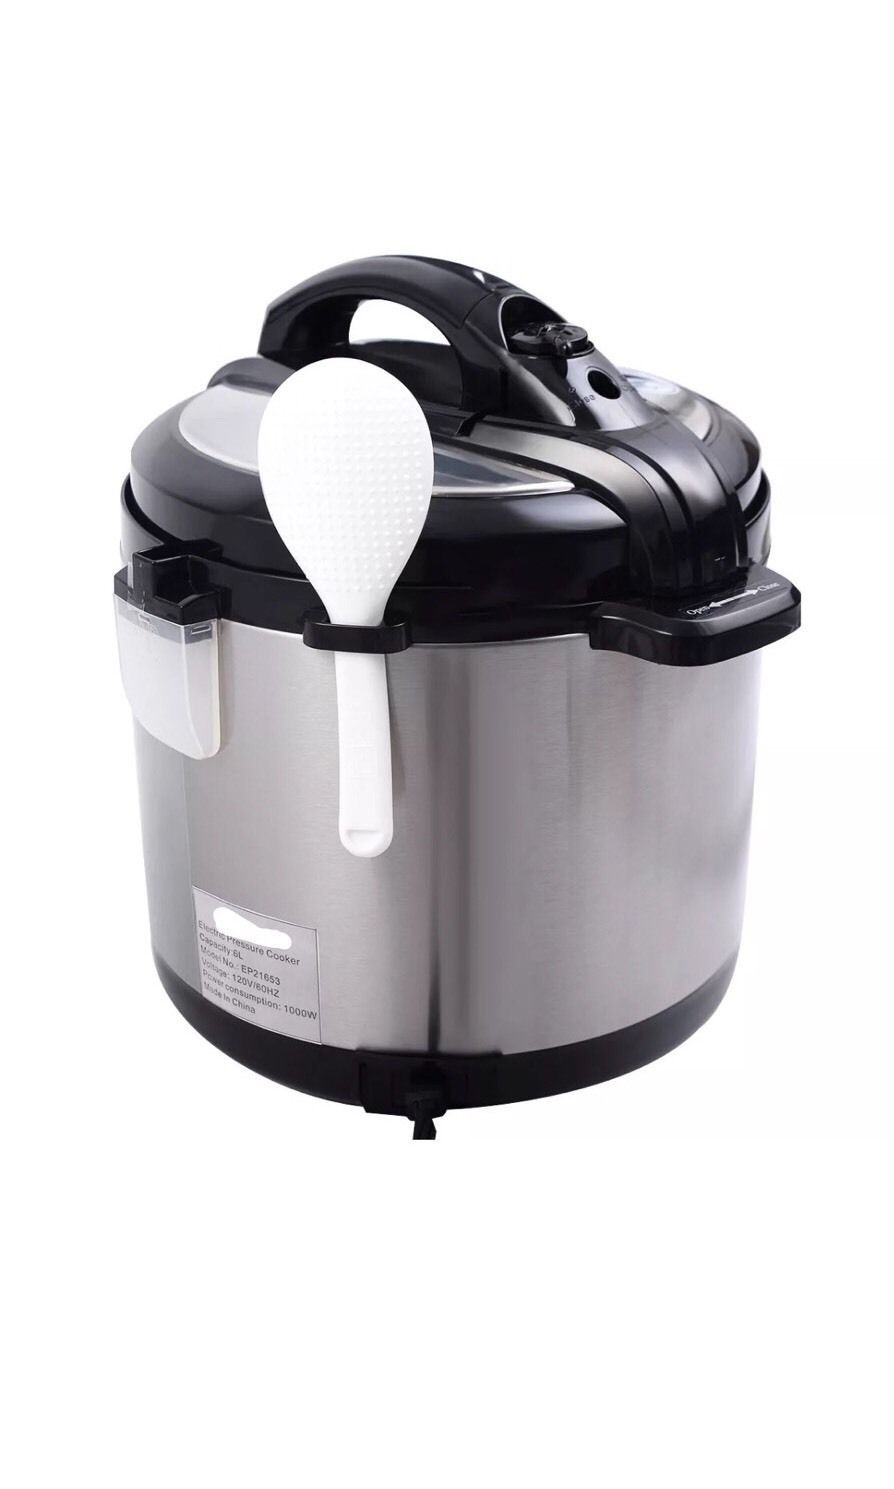 1000 Watt 6-Quart Electric Pressure Cooker Brushed Stainless Steel New BLACK